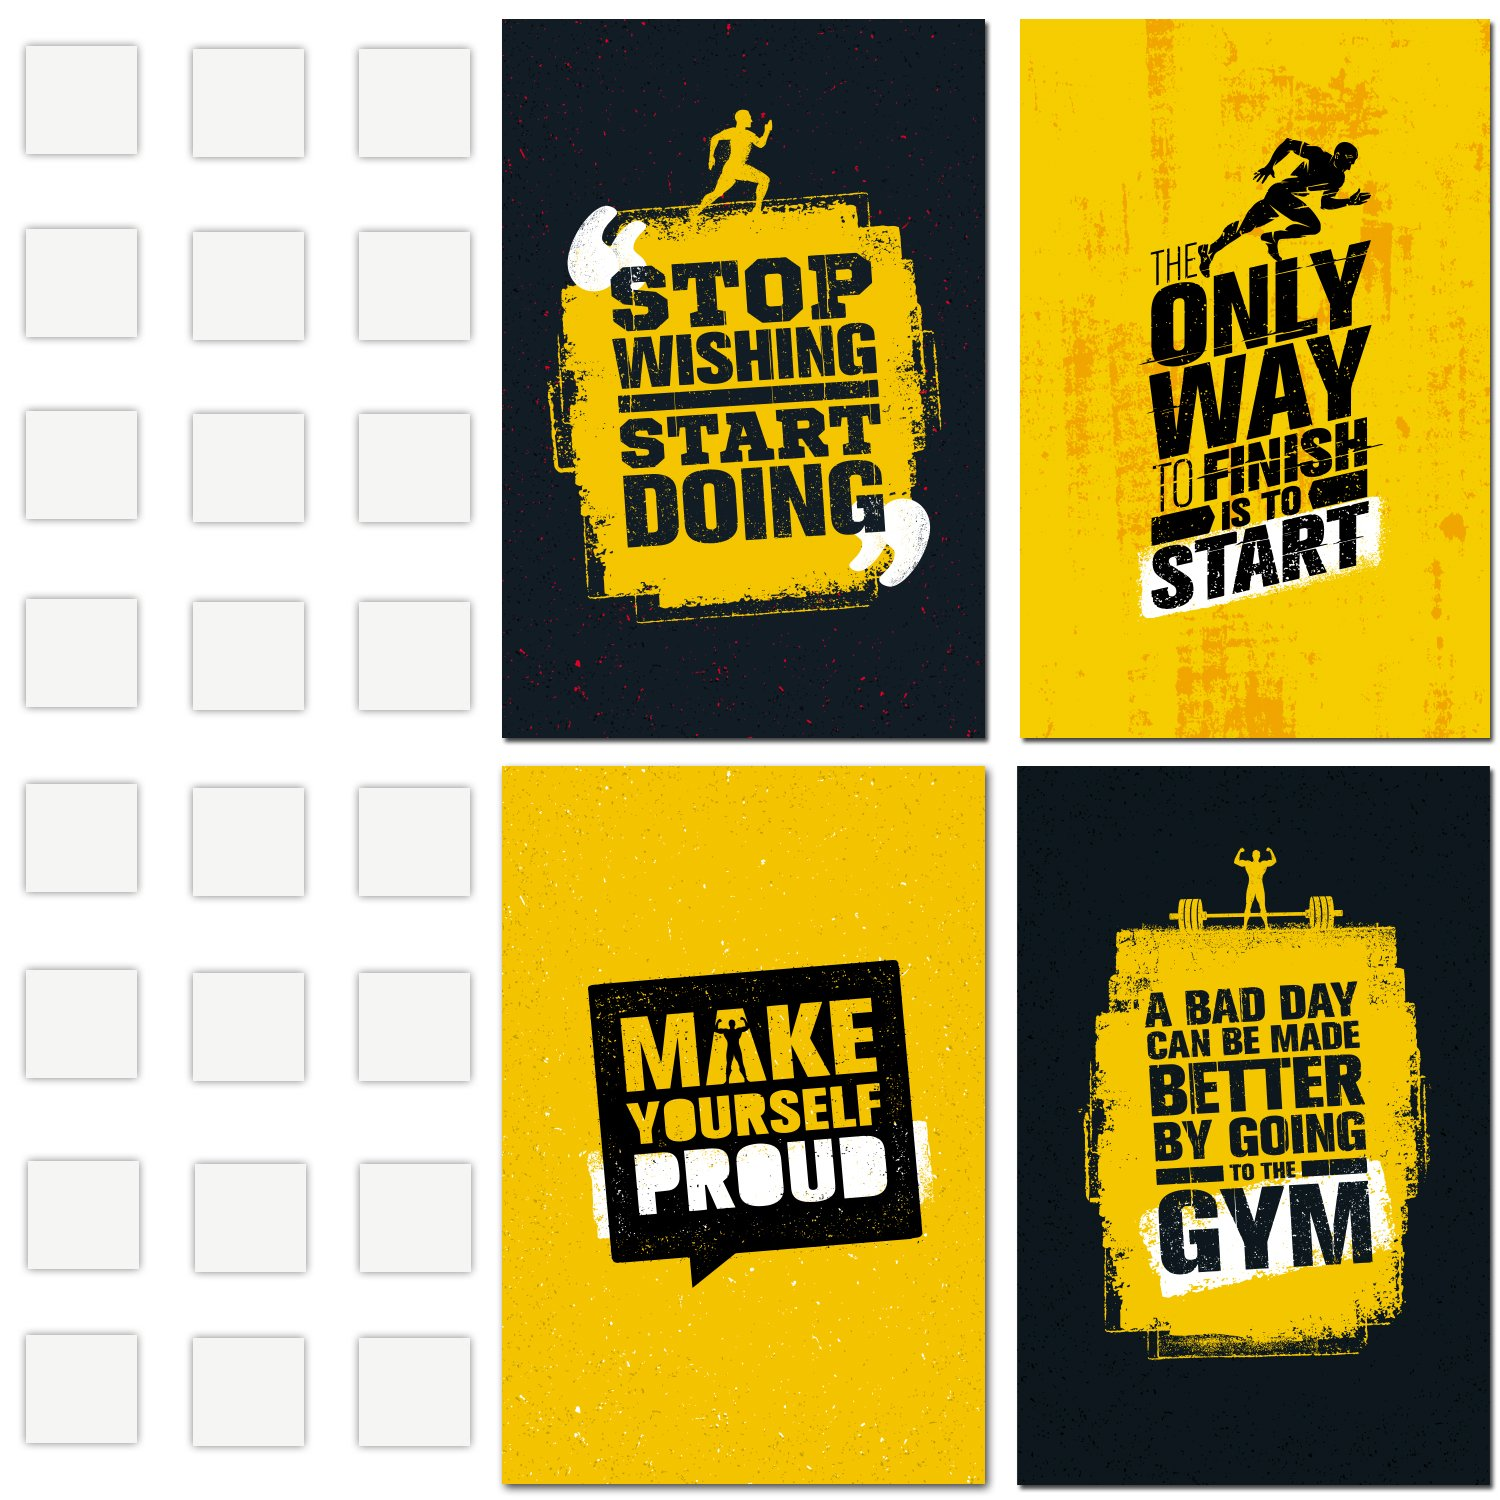 Amazon.com: Motivational Gym Posters | Set of 4 posters of 11"|1500|1500|?|e81fab9c352f832da360ab6b5690ef1a|False|UNLIKELY|0.30363860726356506